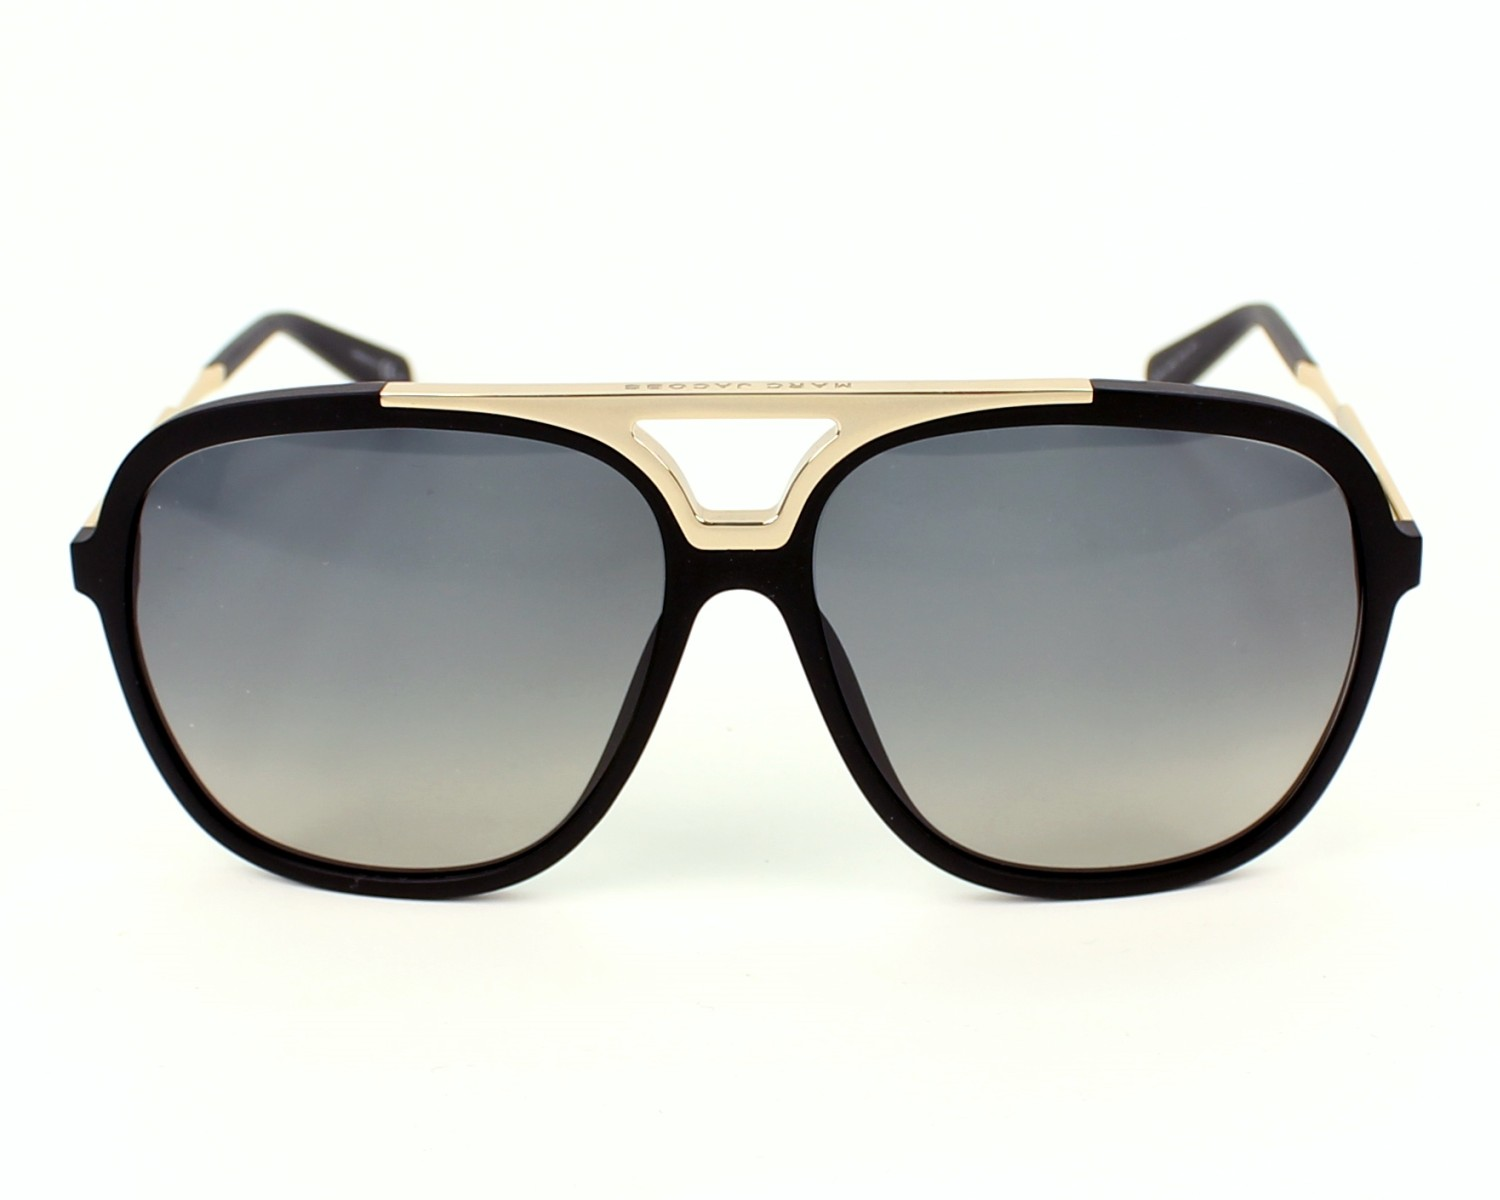 e36566a6507b Sunglasses Marc Jacobs MJ-618-S I46 DX - Black Gold front view